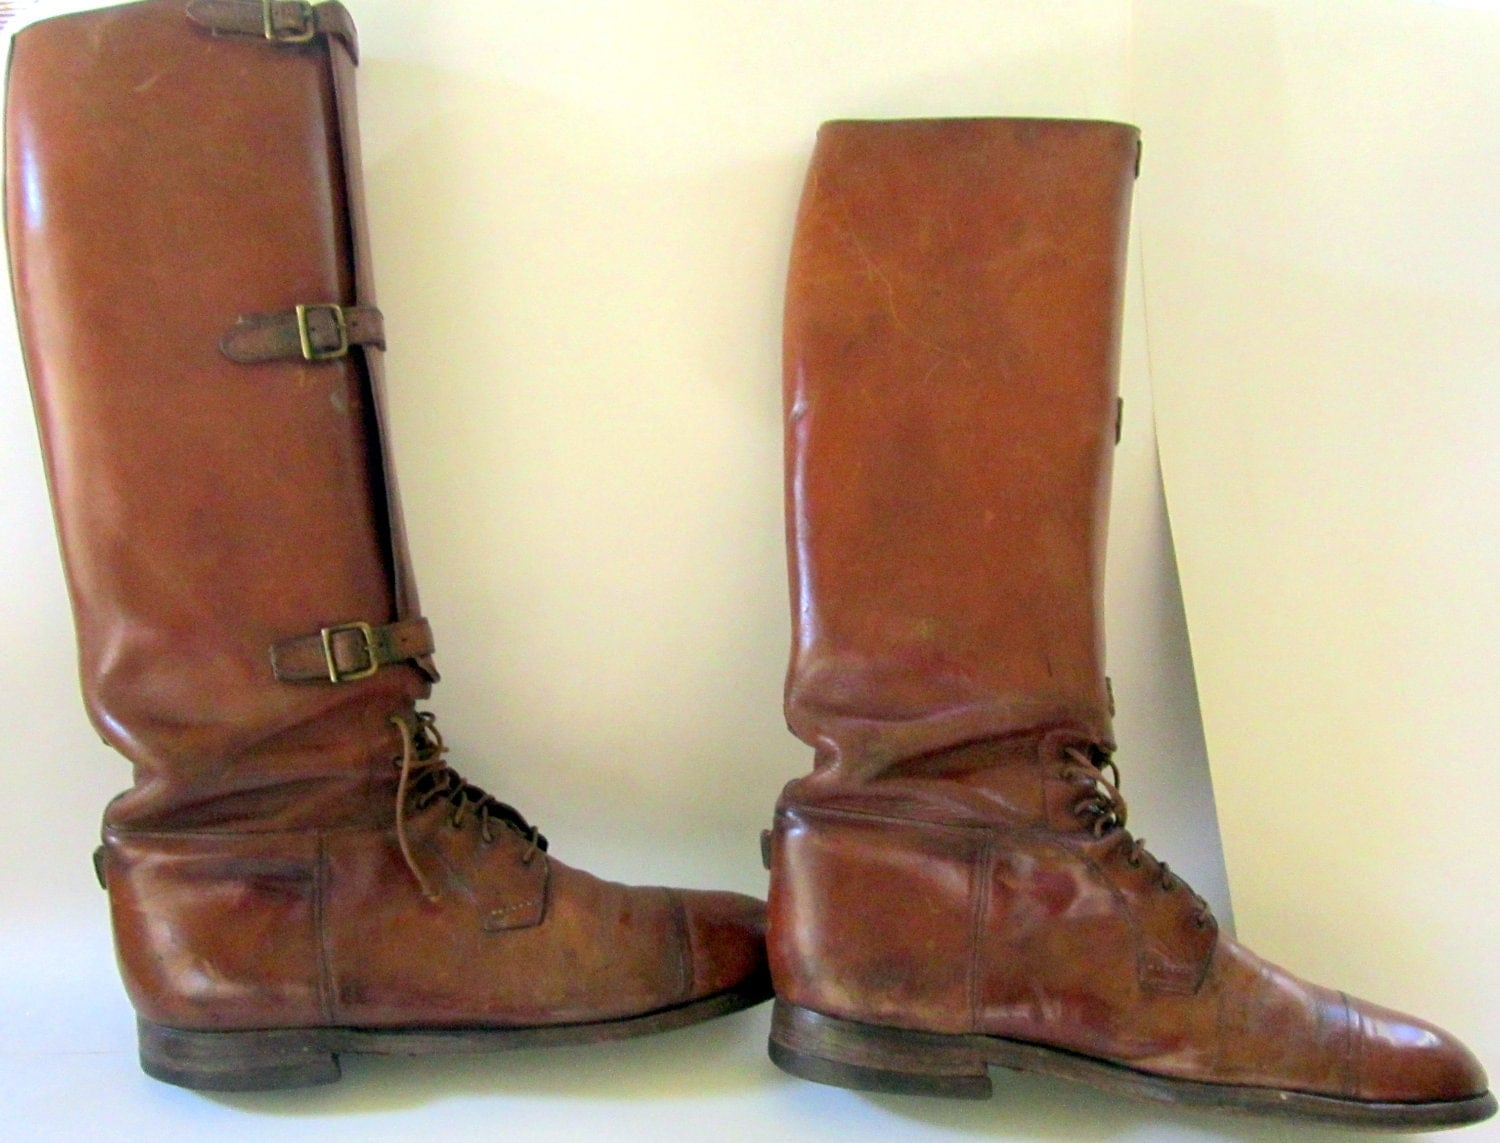 Antique US Army Riding Boots Leather Calvary Teitzel Jones WWI